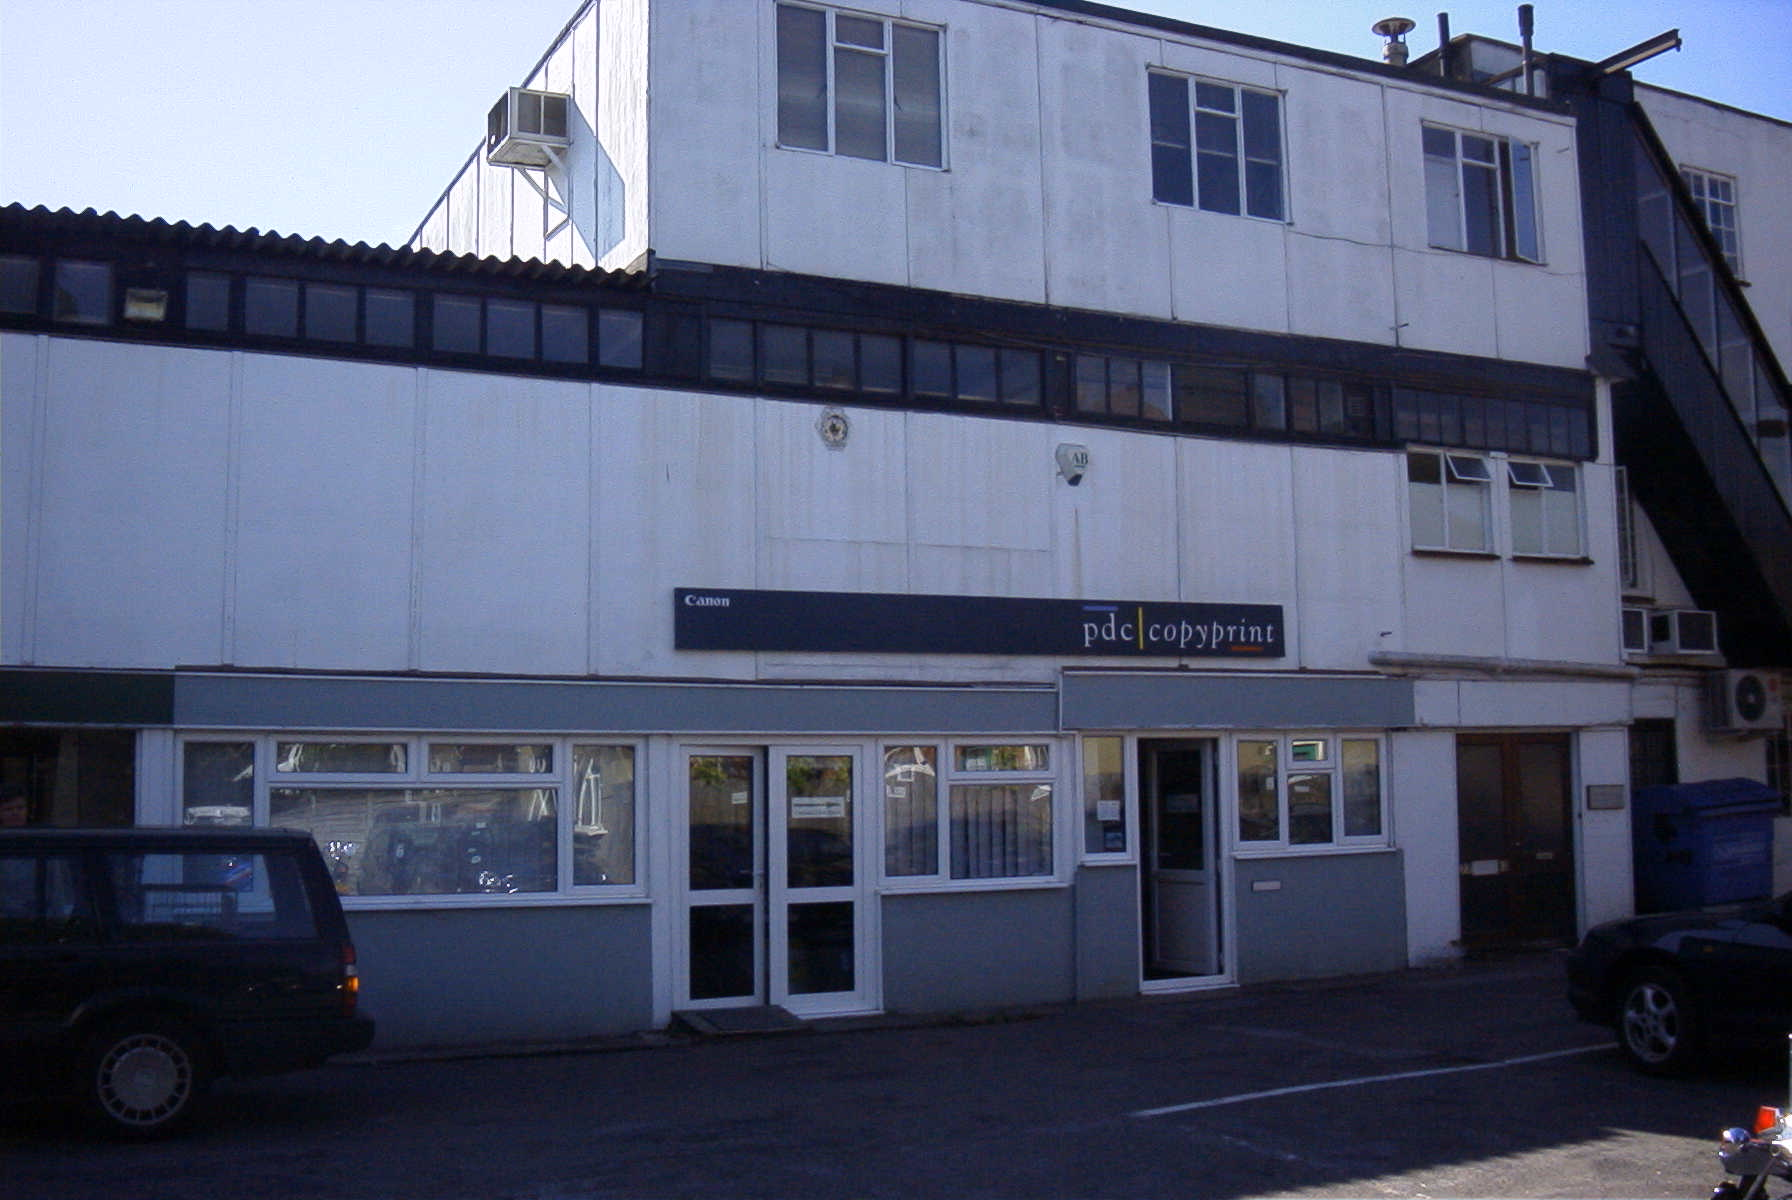 79 WALNUT TREE CLOSE, GUILDFORD - Business Unit - LETTING